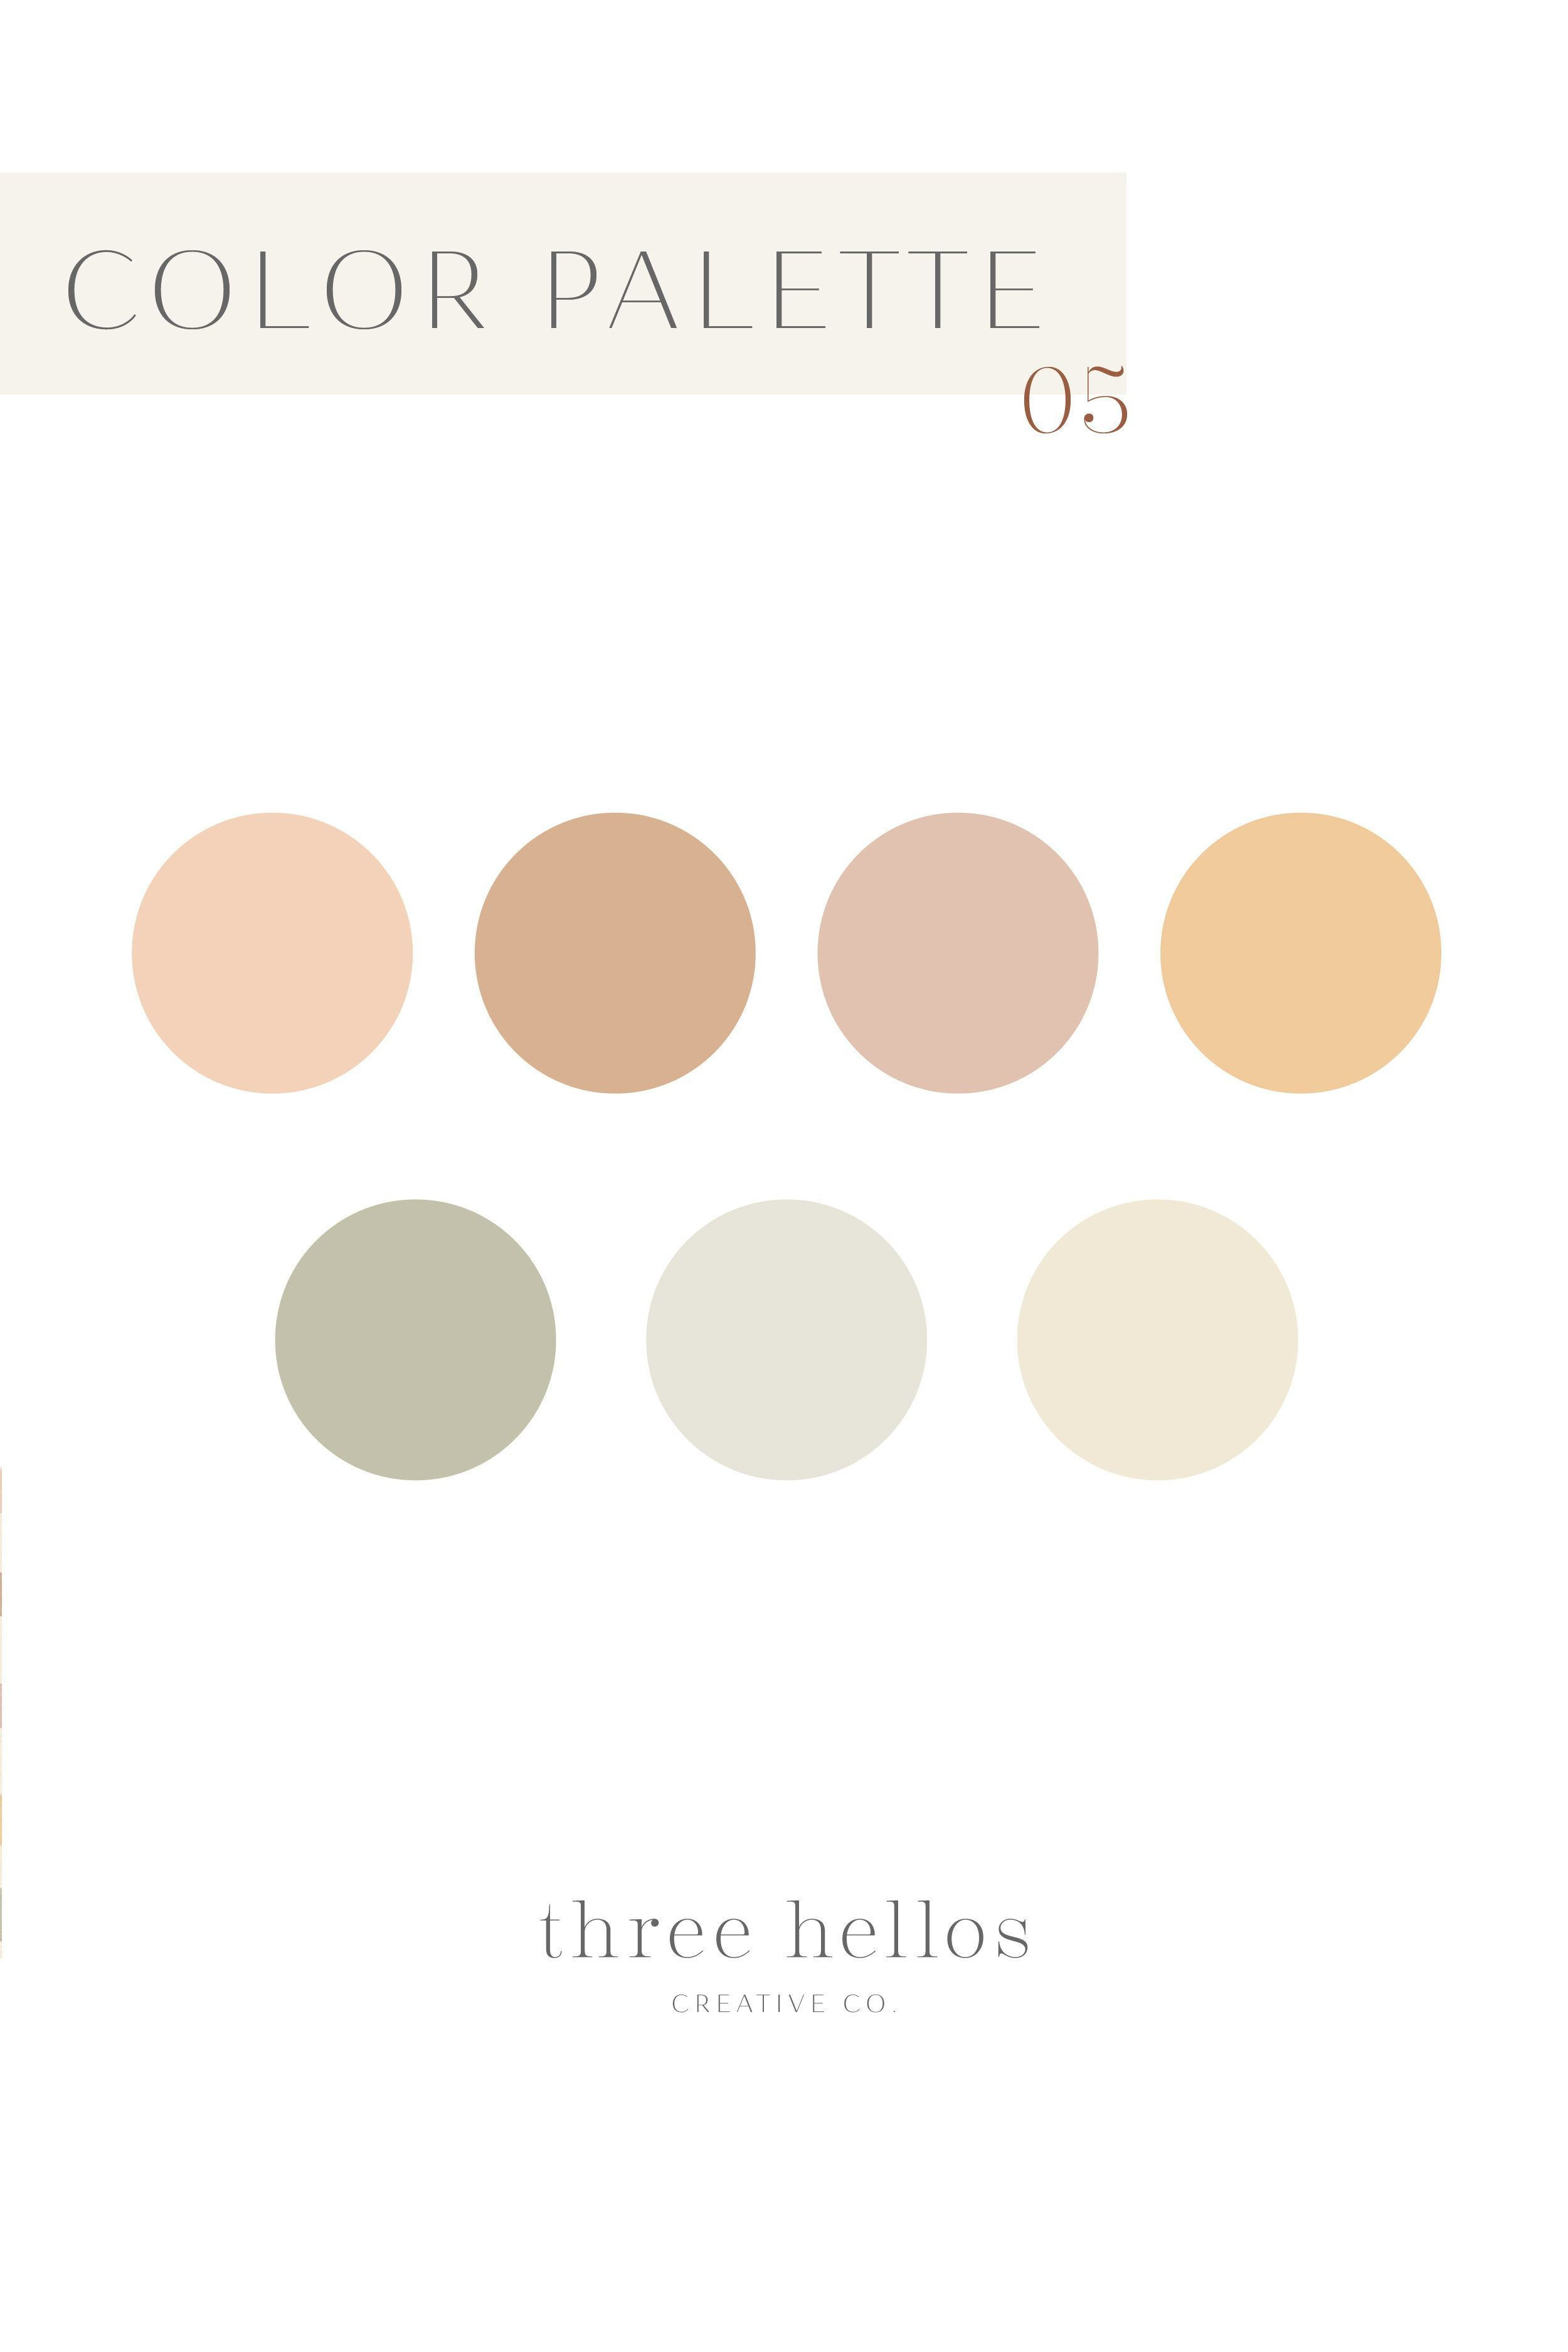 Three Hellos | Artisan Branding, Web Design & Stationery for Passionate Creatives and Small Businesses #earthtones